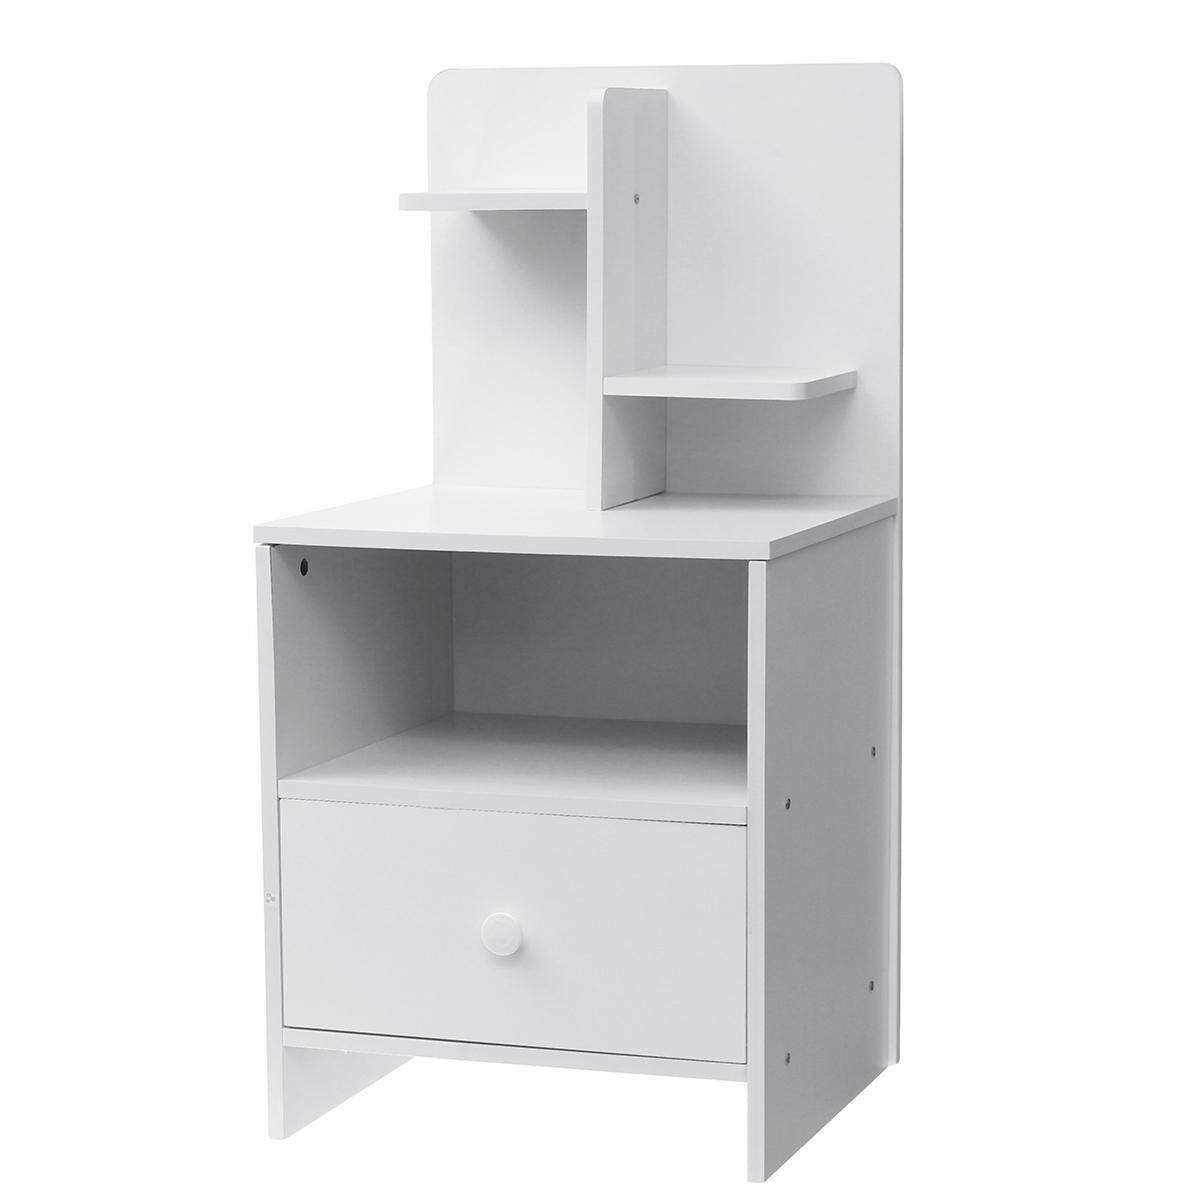 Modern Bedside Table With Drawer Nightstand Storage Bedroom Cabinet Shelf Units Yellow white